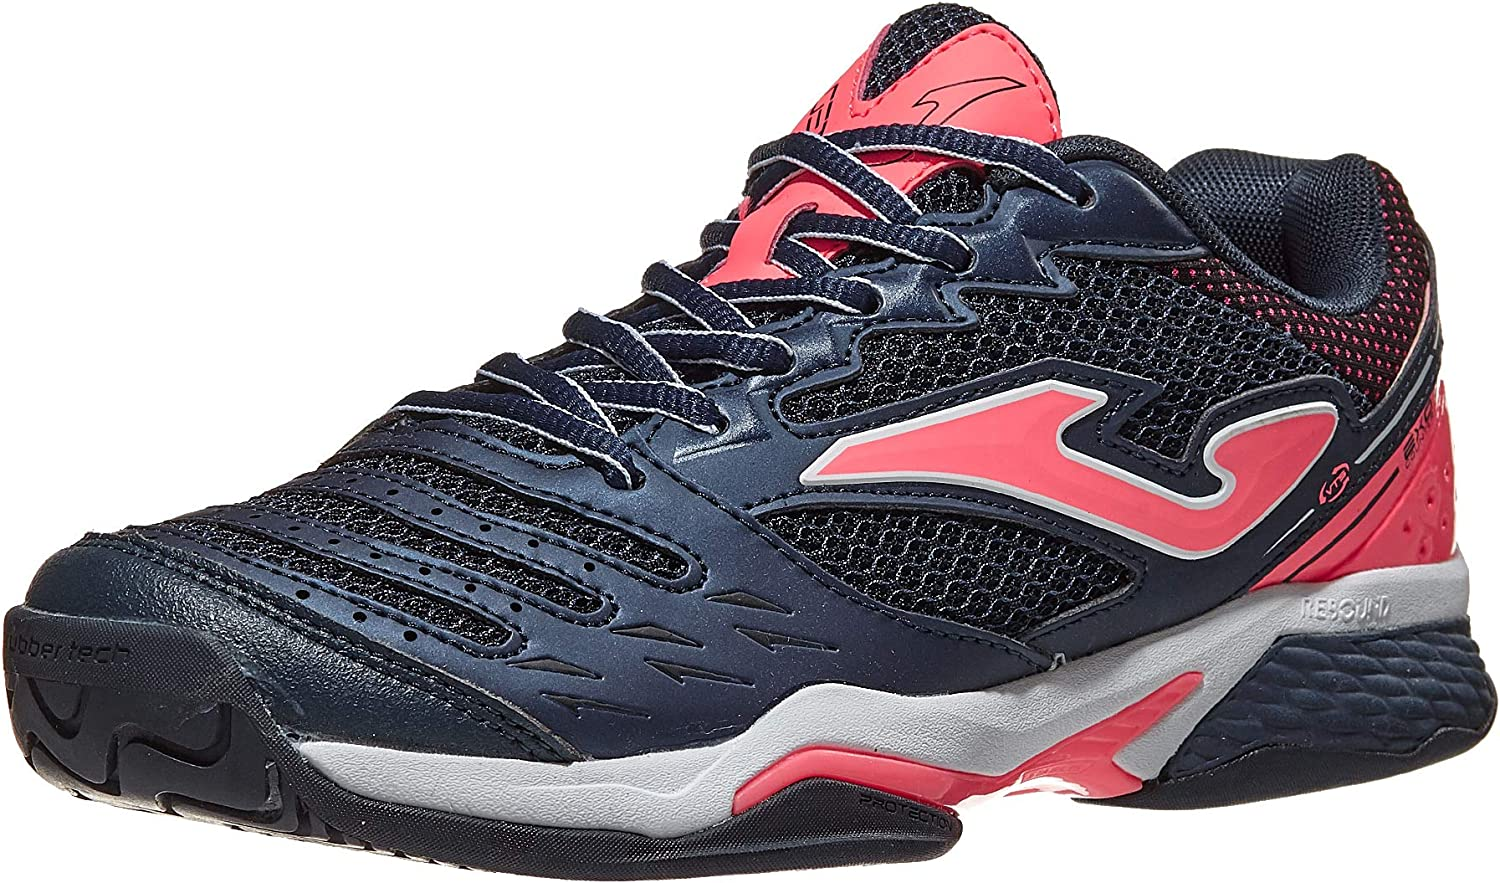 Joma Set Navy Pink Women's shoes